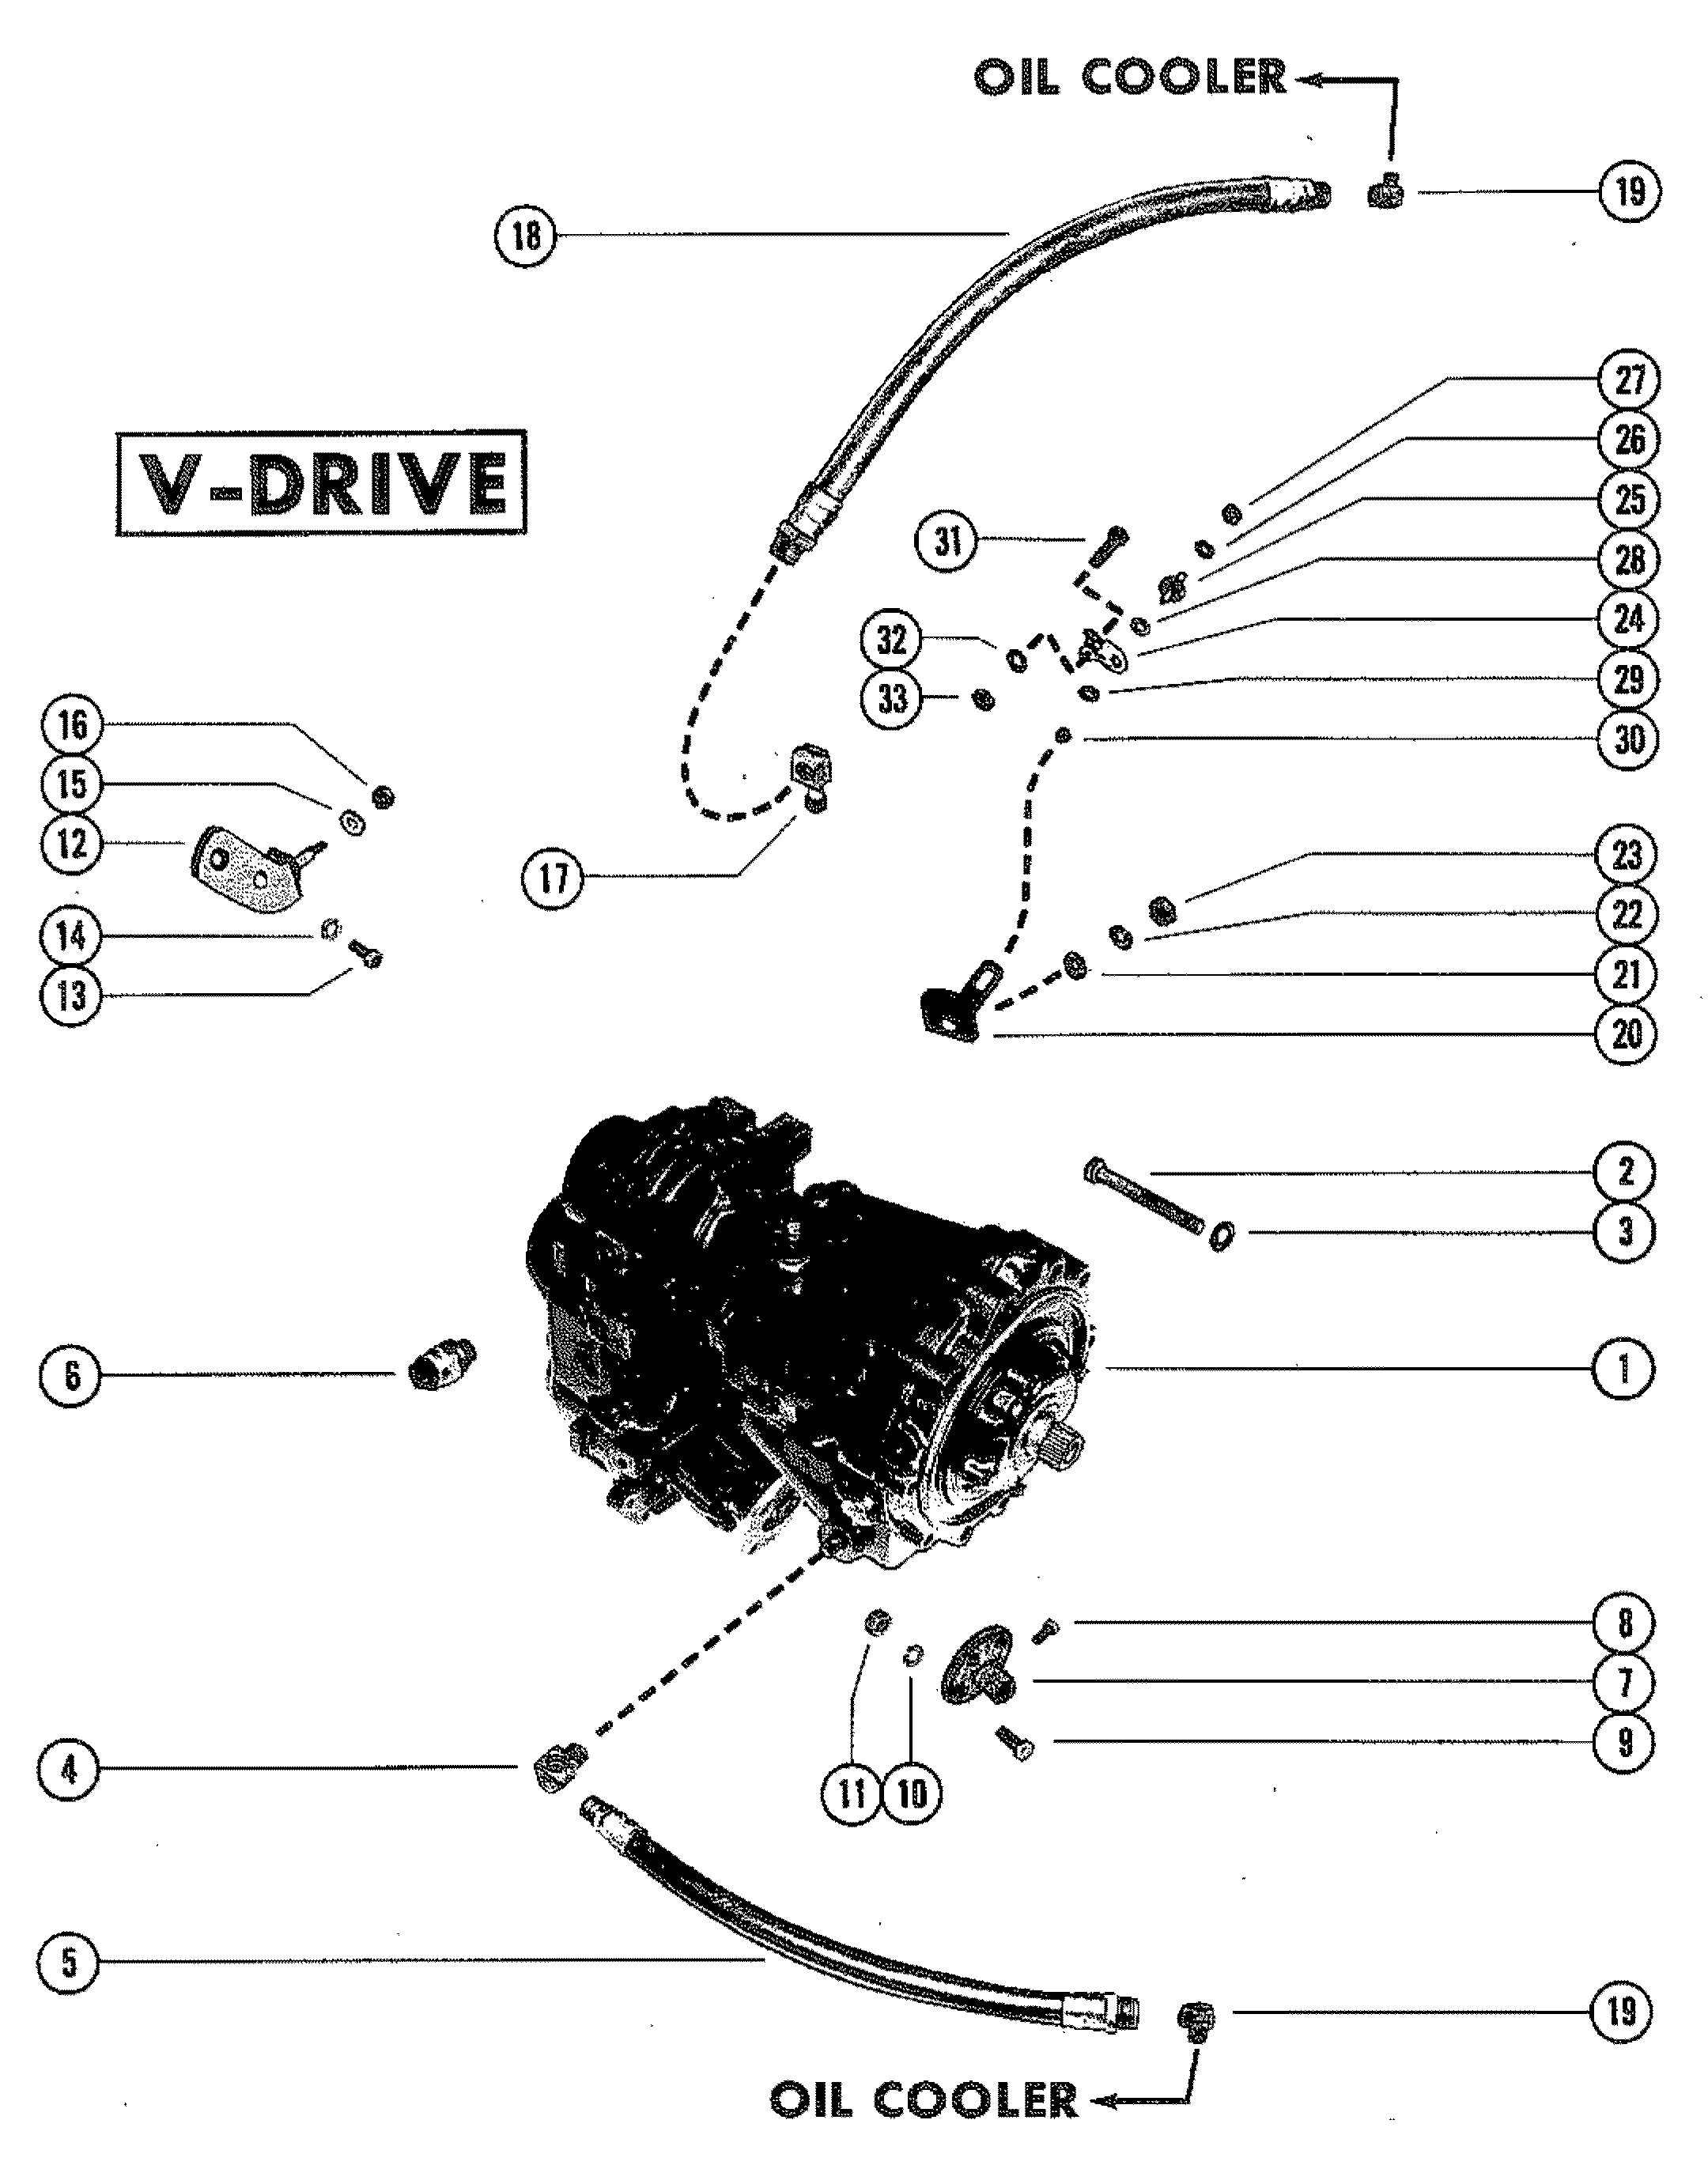 Transmission And Related Parts V Drive For Mercruiser 898